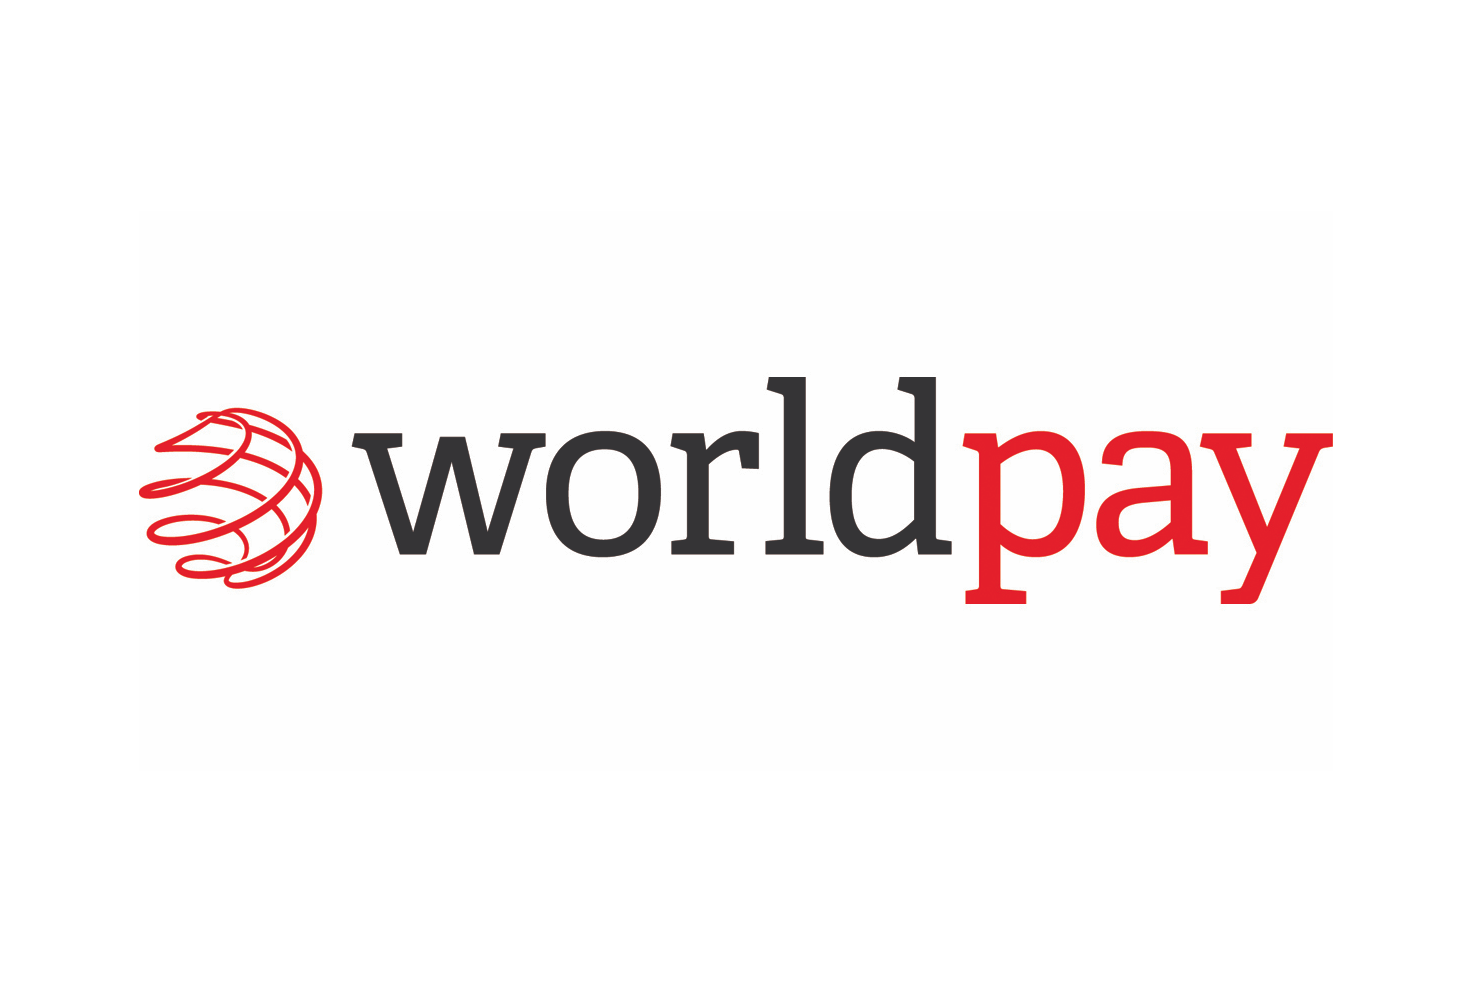 Worldpay increases its 2017 interim dividend by 23%